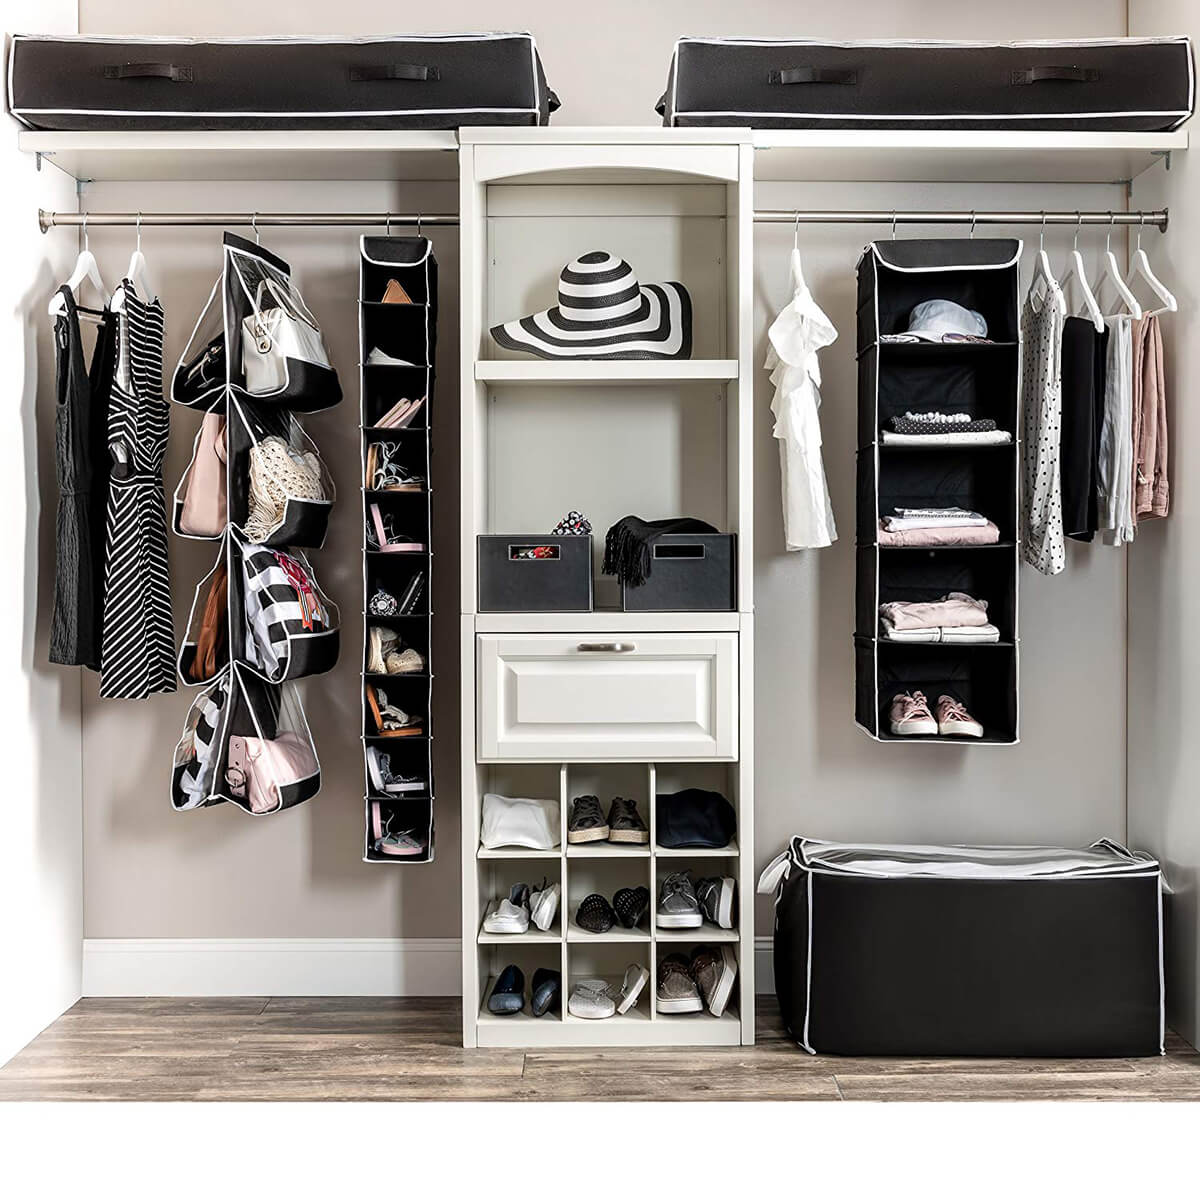 Fabulous Complete Black and White Closet Organizers